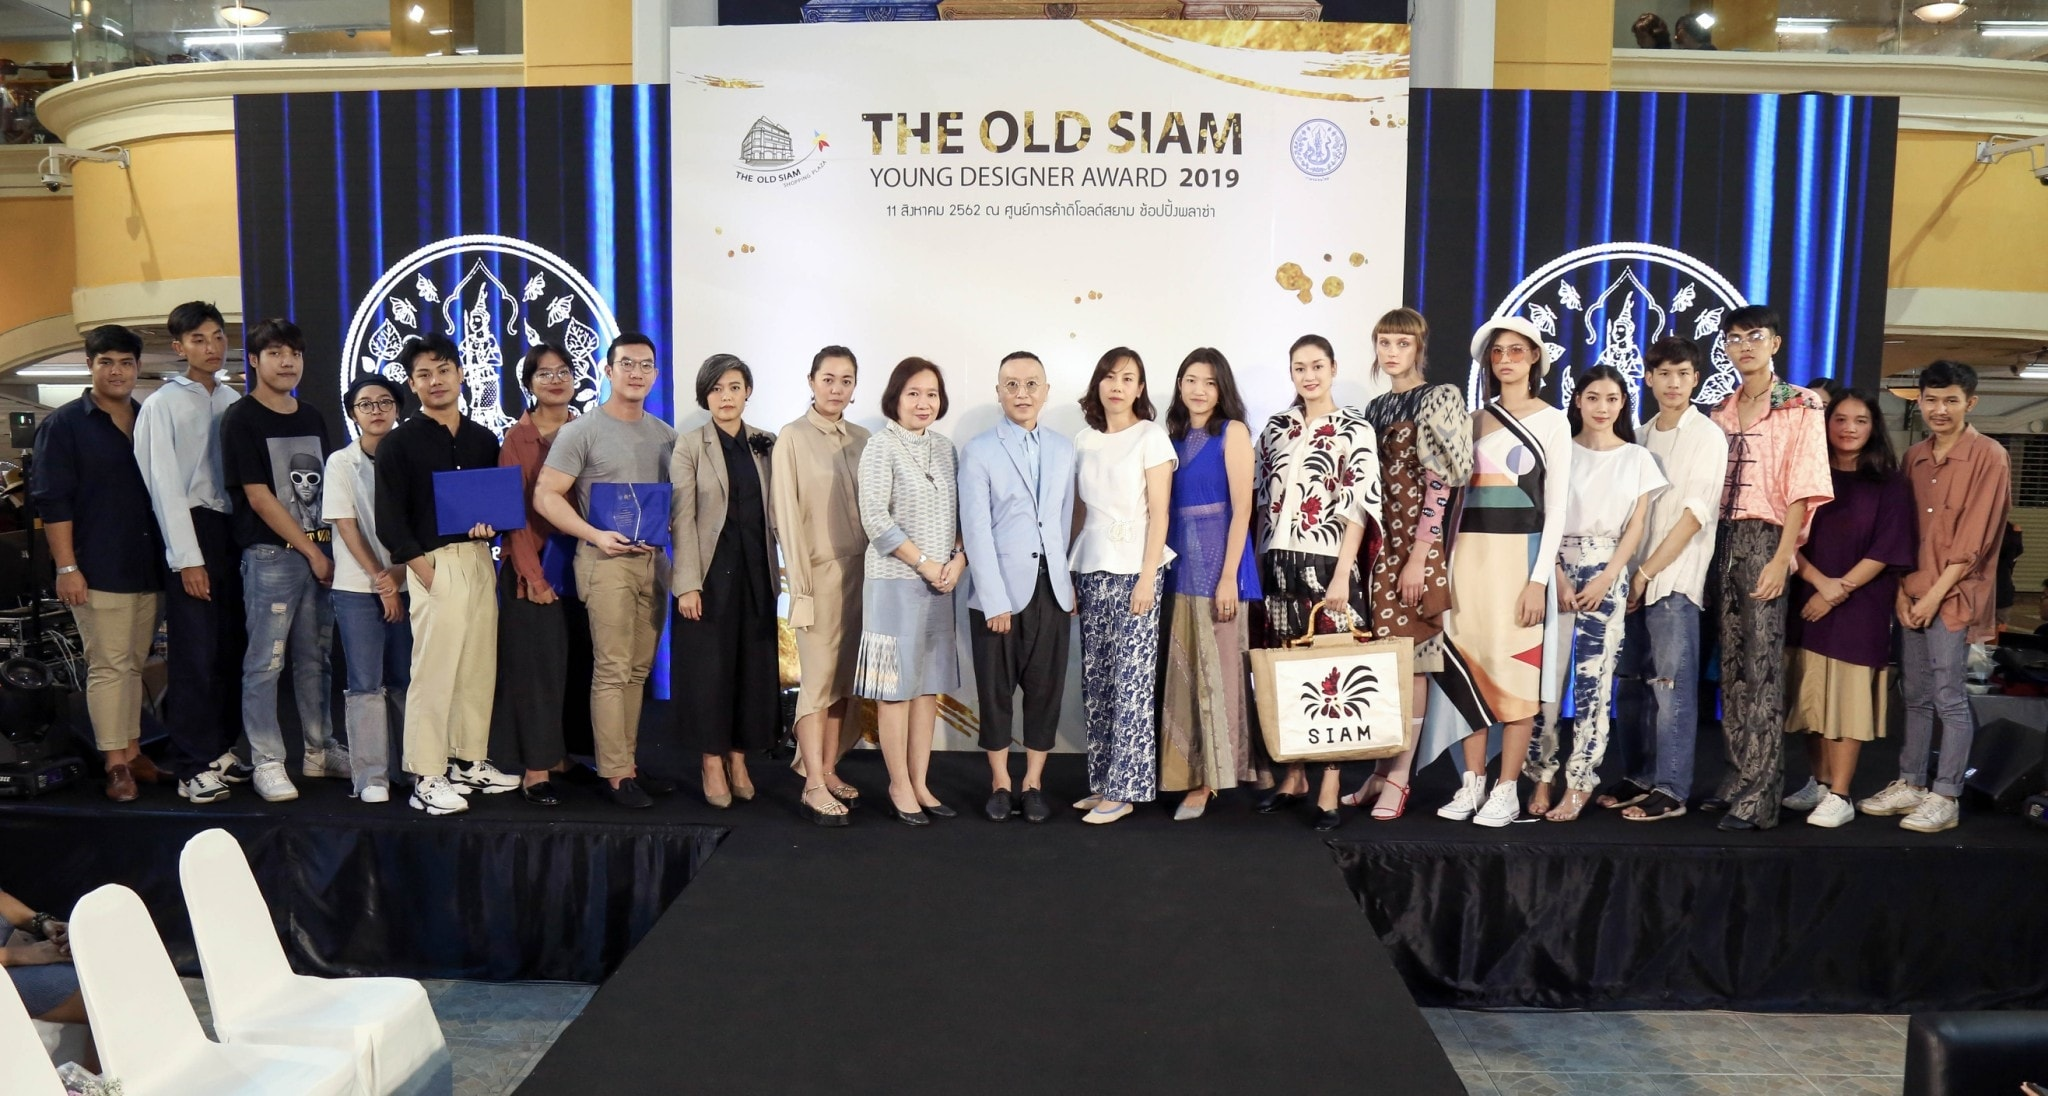 The Old Siam Young Designer Award 2019